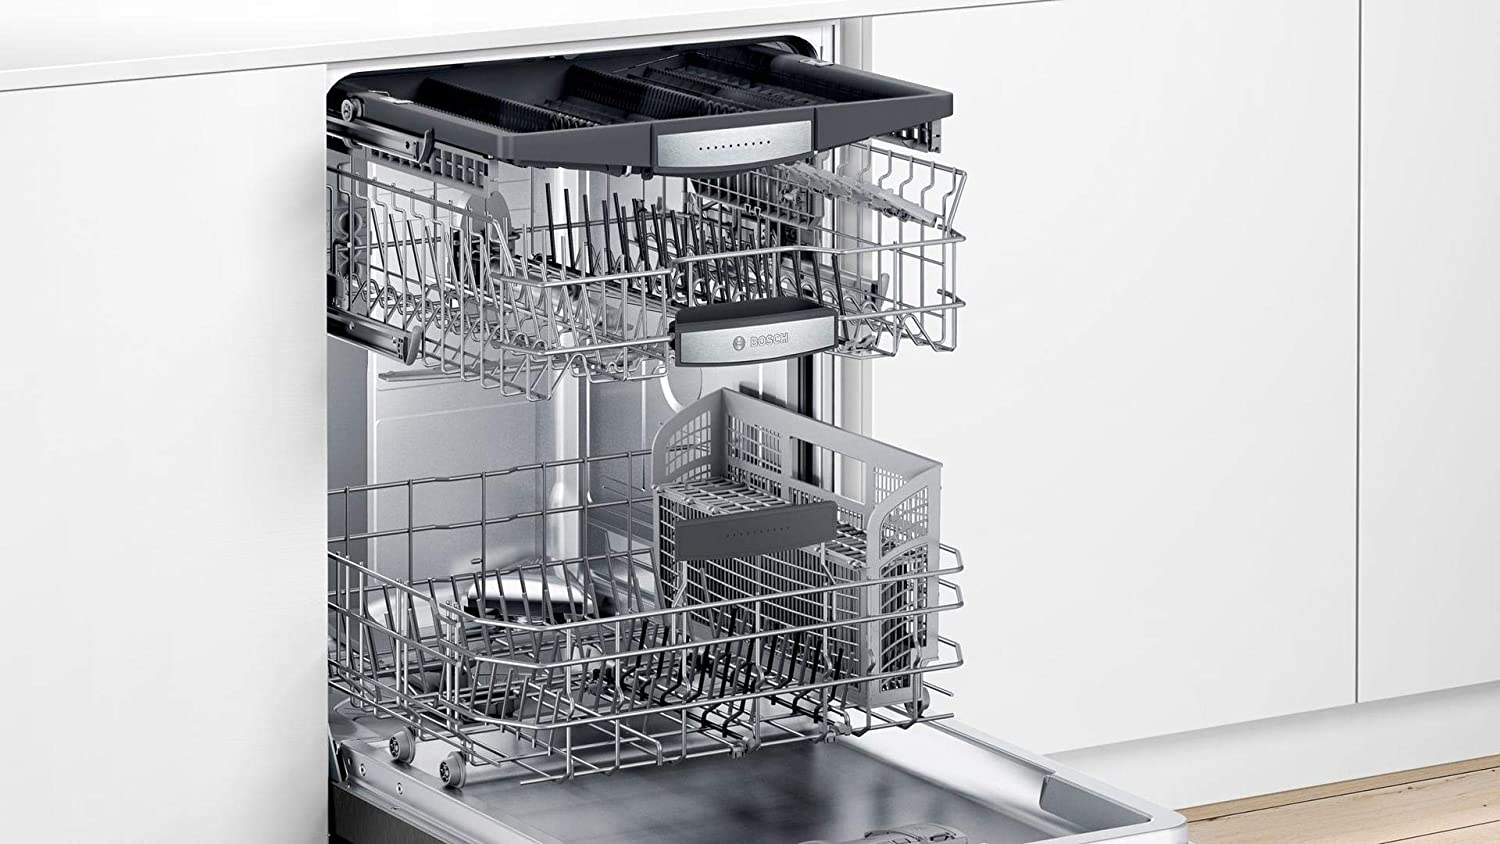 White Bosch SHXM78Z5N 24 800 Series Fully Integrated Dishwasher with 16 Place Settings Flexible 3rd Rack InfoLight and CrystalDry